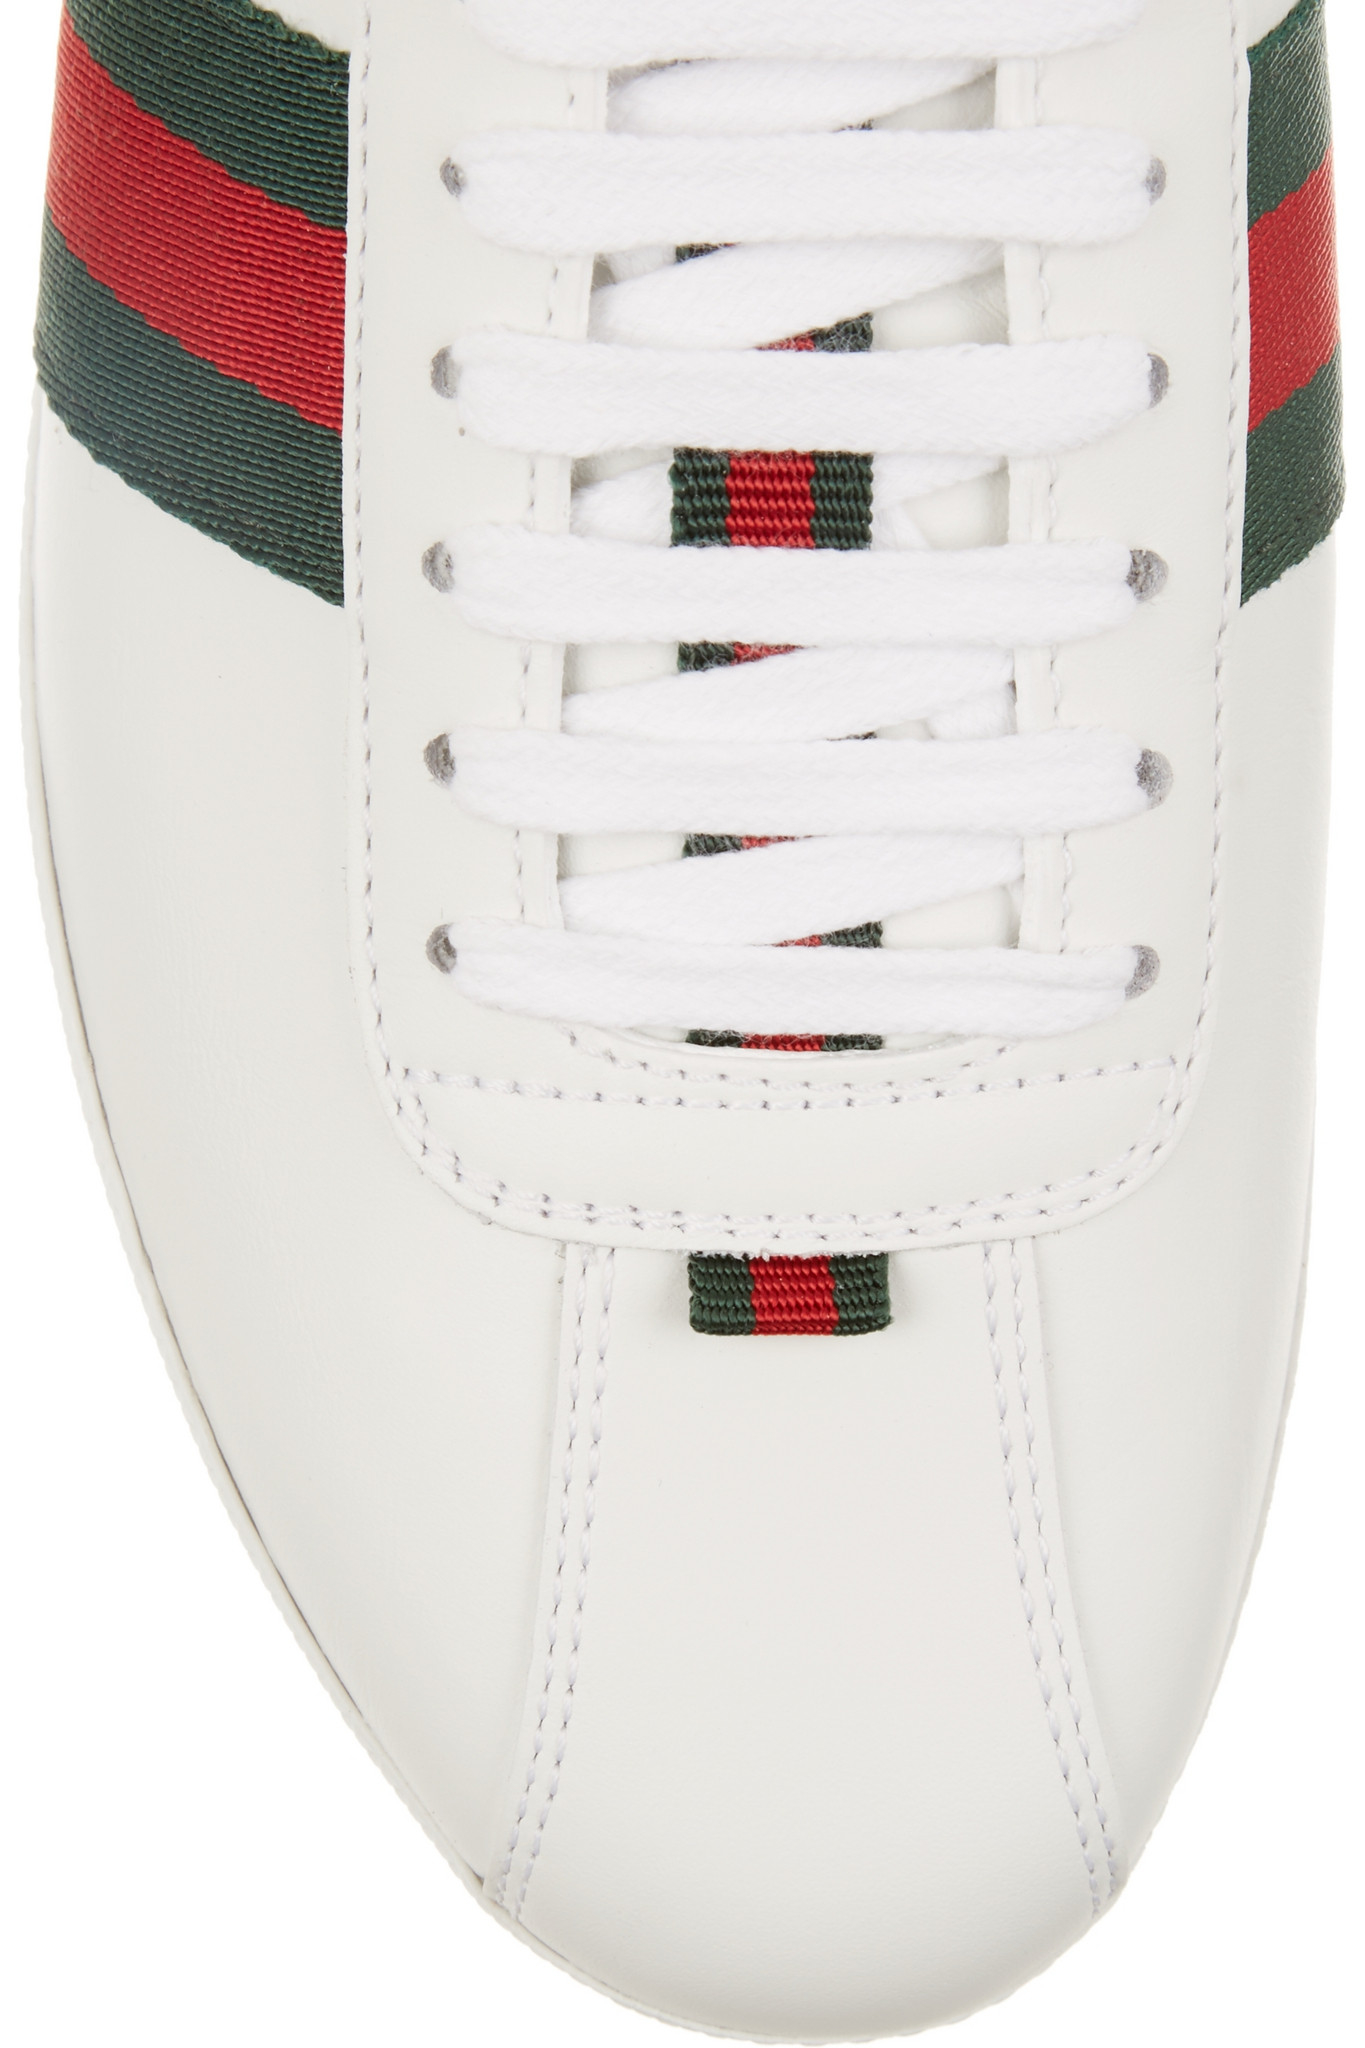 6c742b5a7 Gucci New Ace Watersnake-trimmed Leather Sneakers in White - Lyst